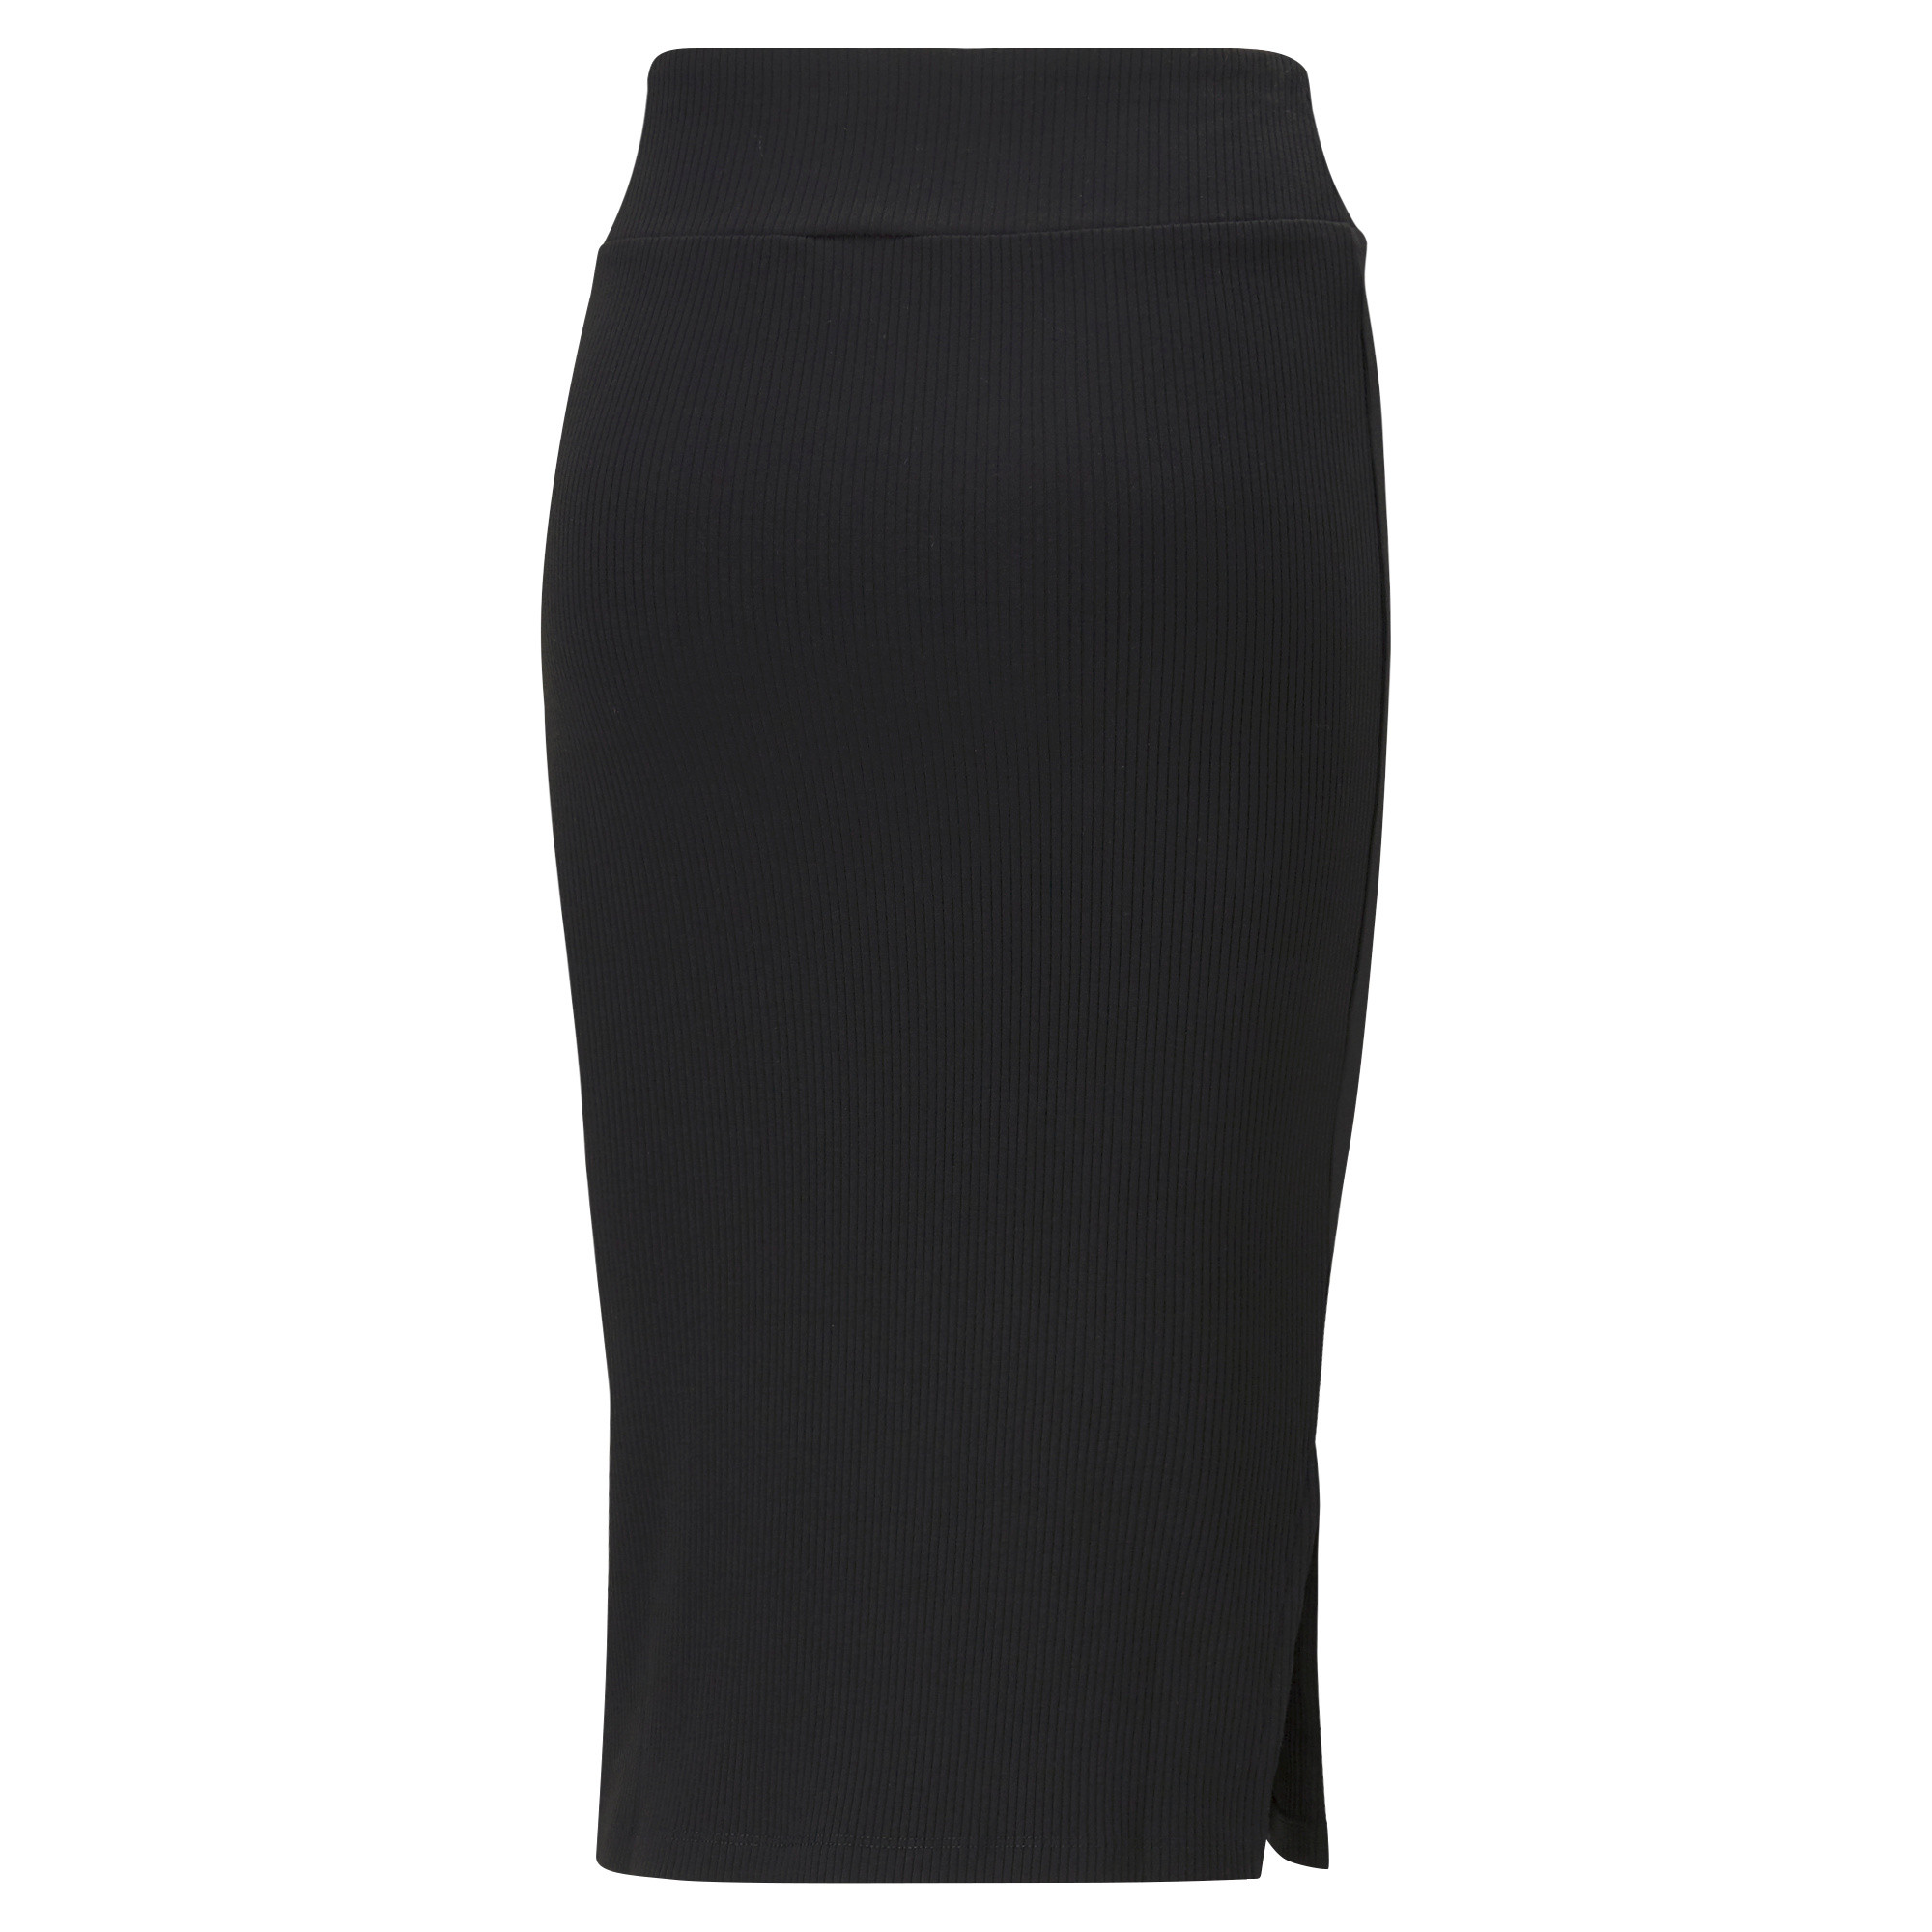 Gonna sportiva midi a coste Classics Collection, Nero, large image number 1